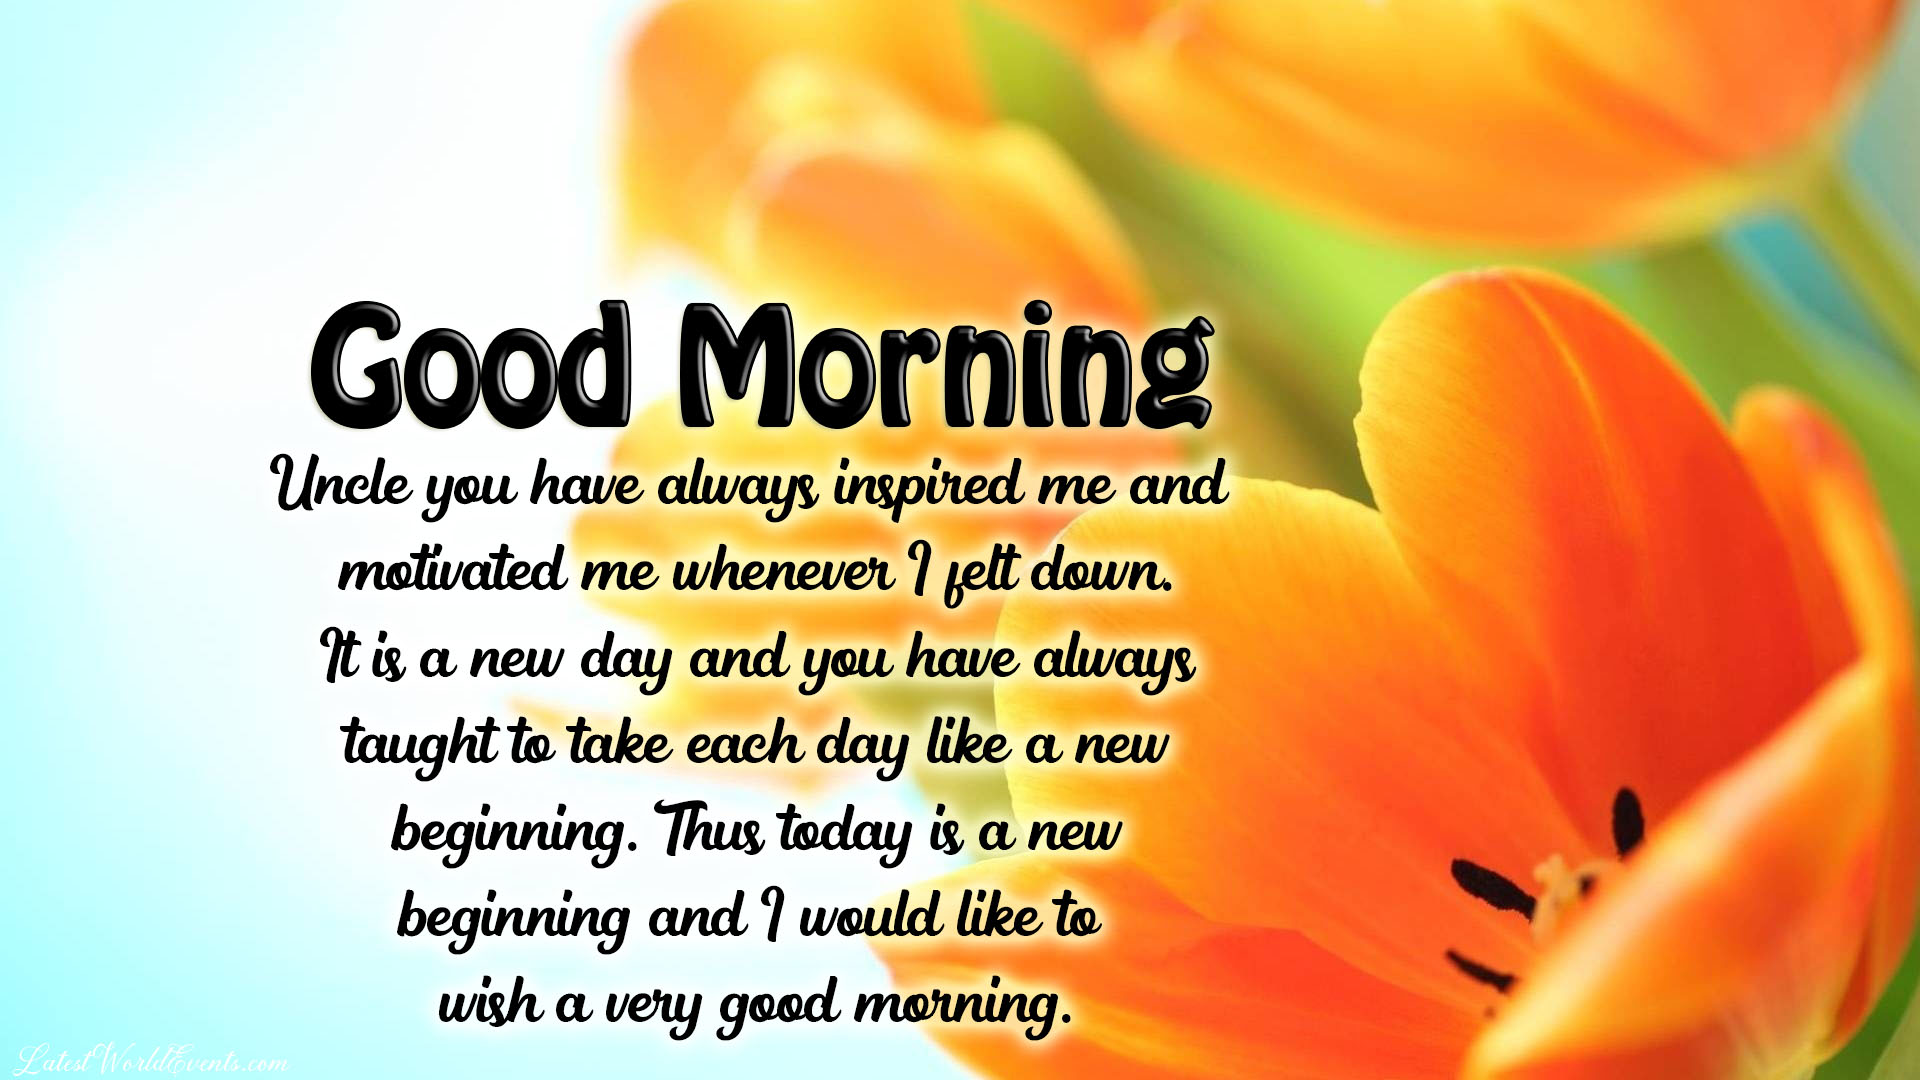 Inspirational Morning Quotes For Uncle Beautiful Good Morning Quotes